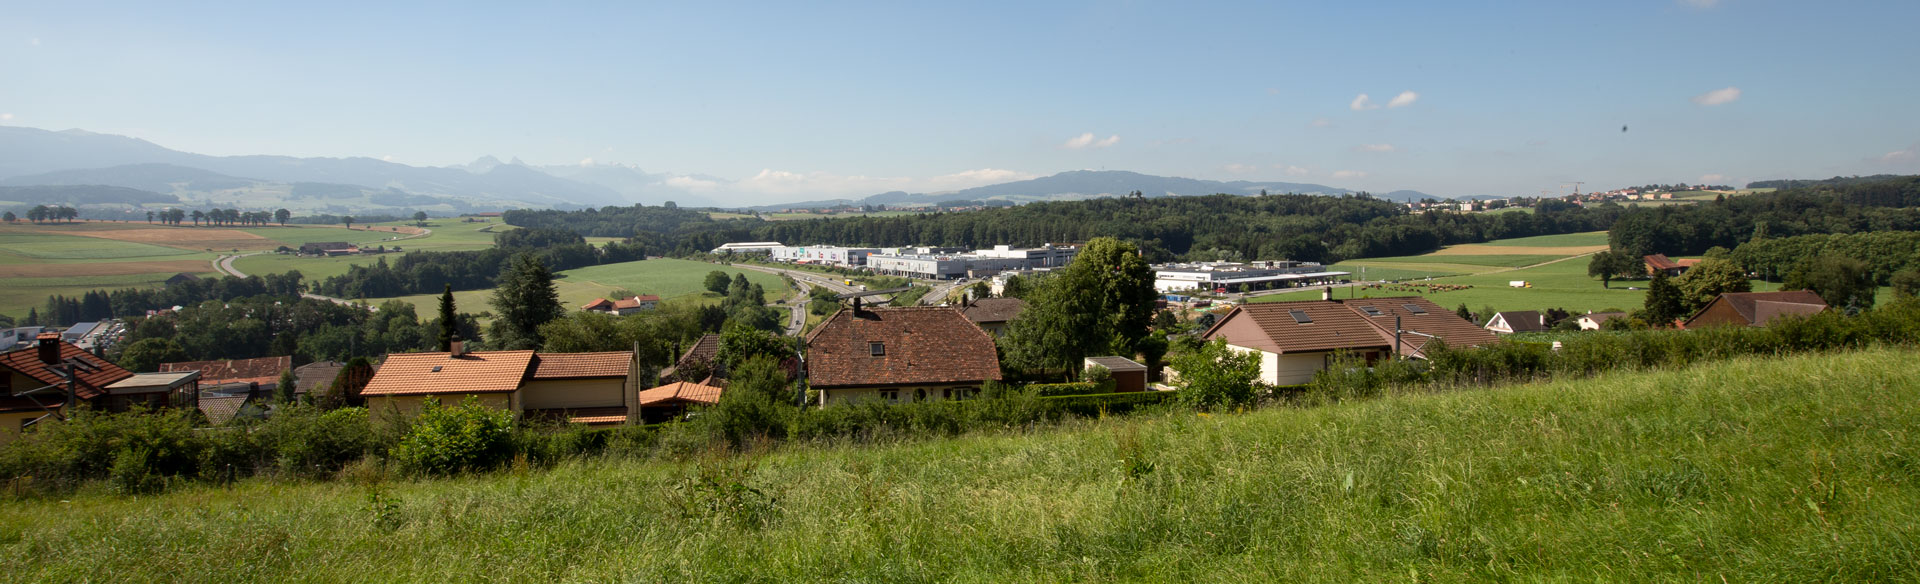 matran_commune_grand_fribourg_ete_2018_mg_1005.jpg